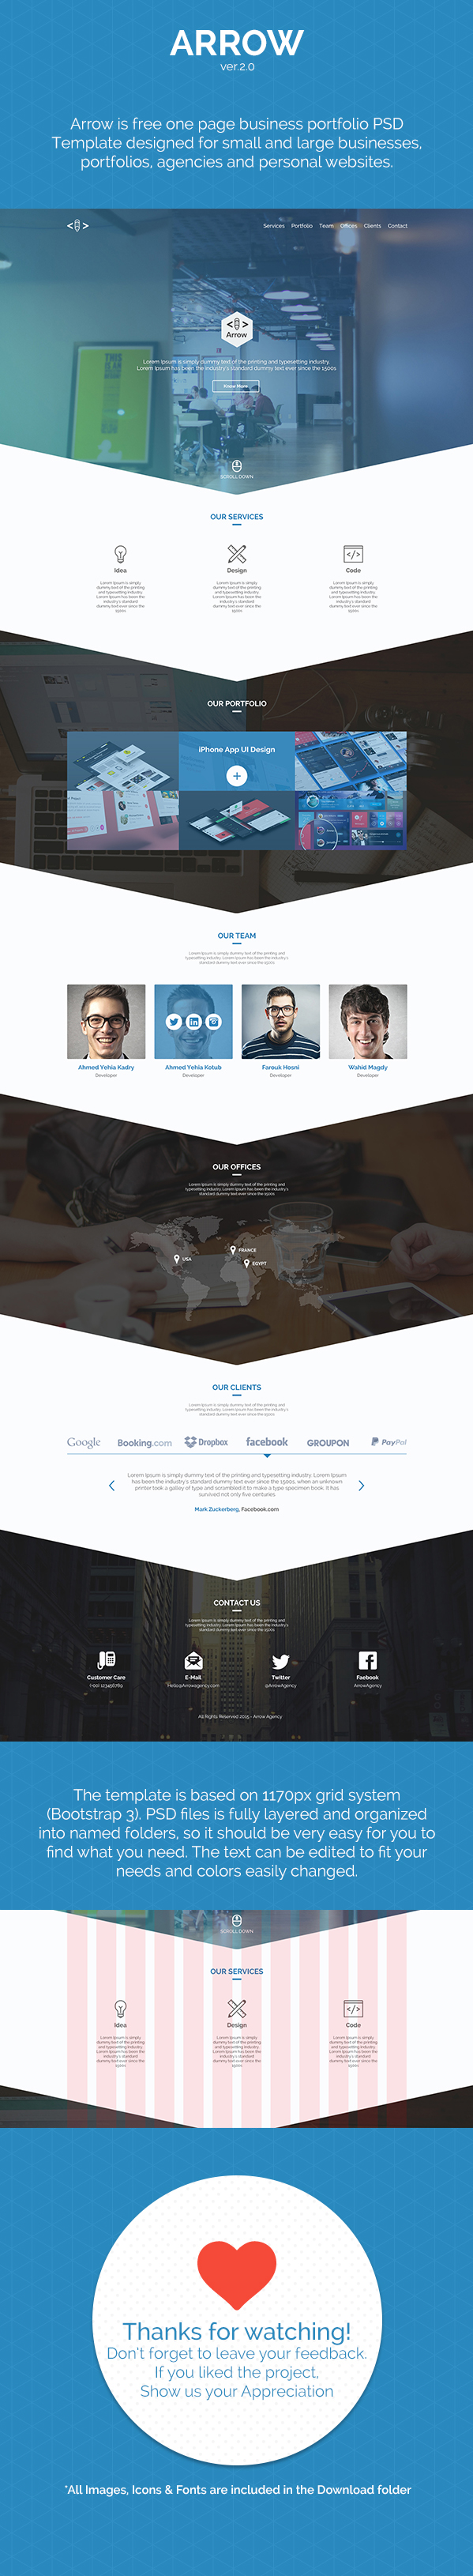 Arrow free one page business portfolio psd template on behance arrow free one page business portfolio psd template on behance wajeb